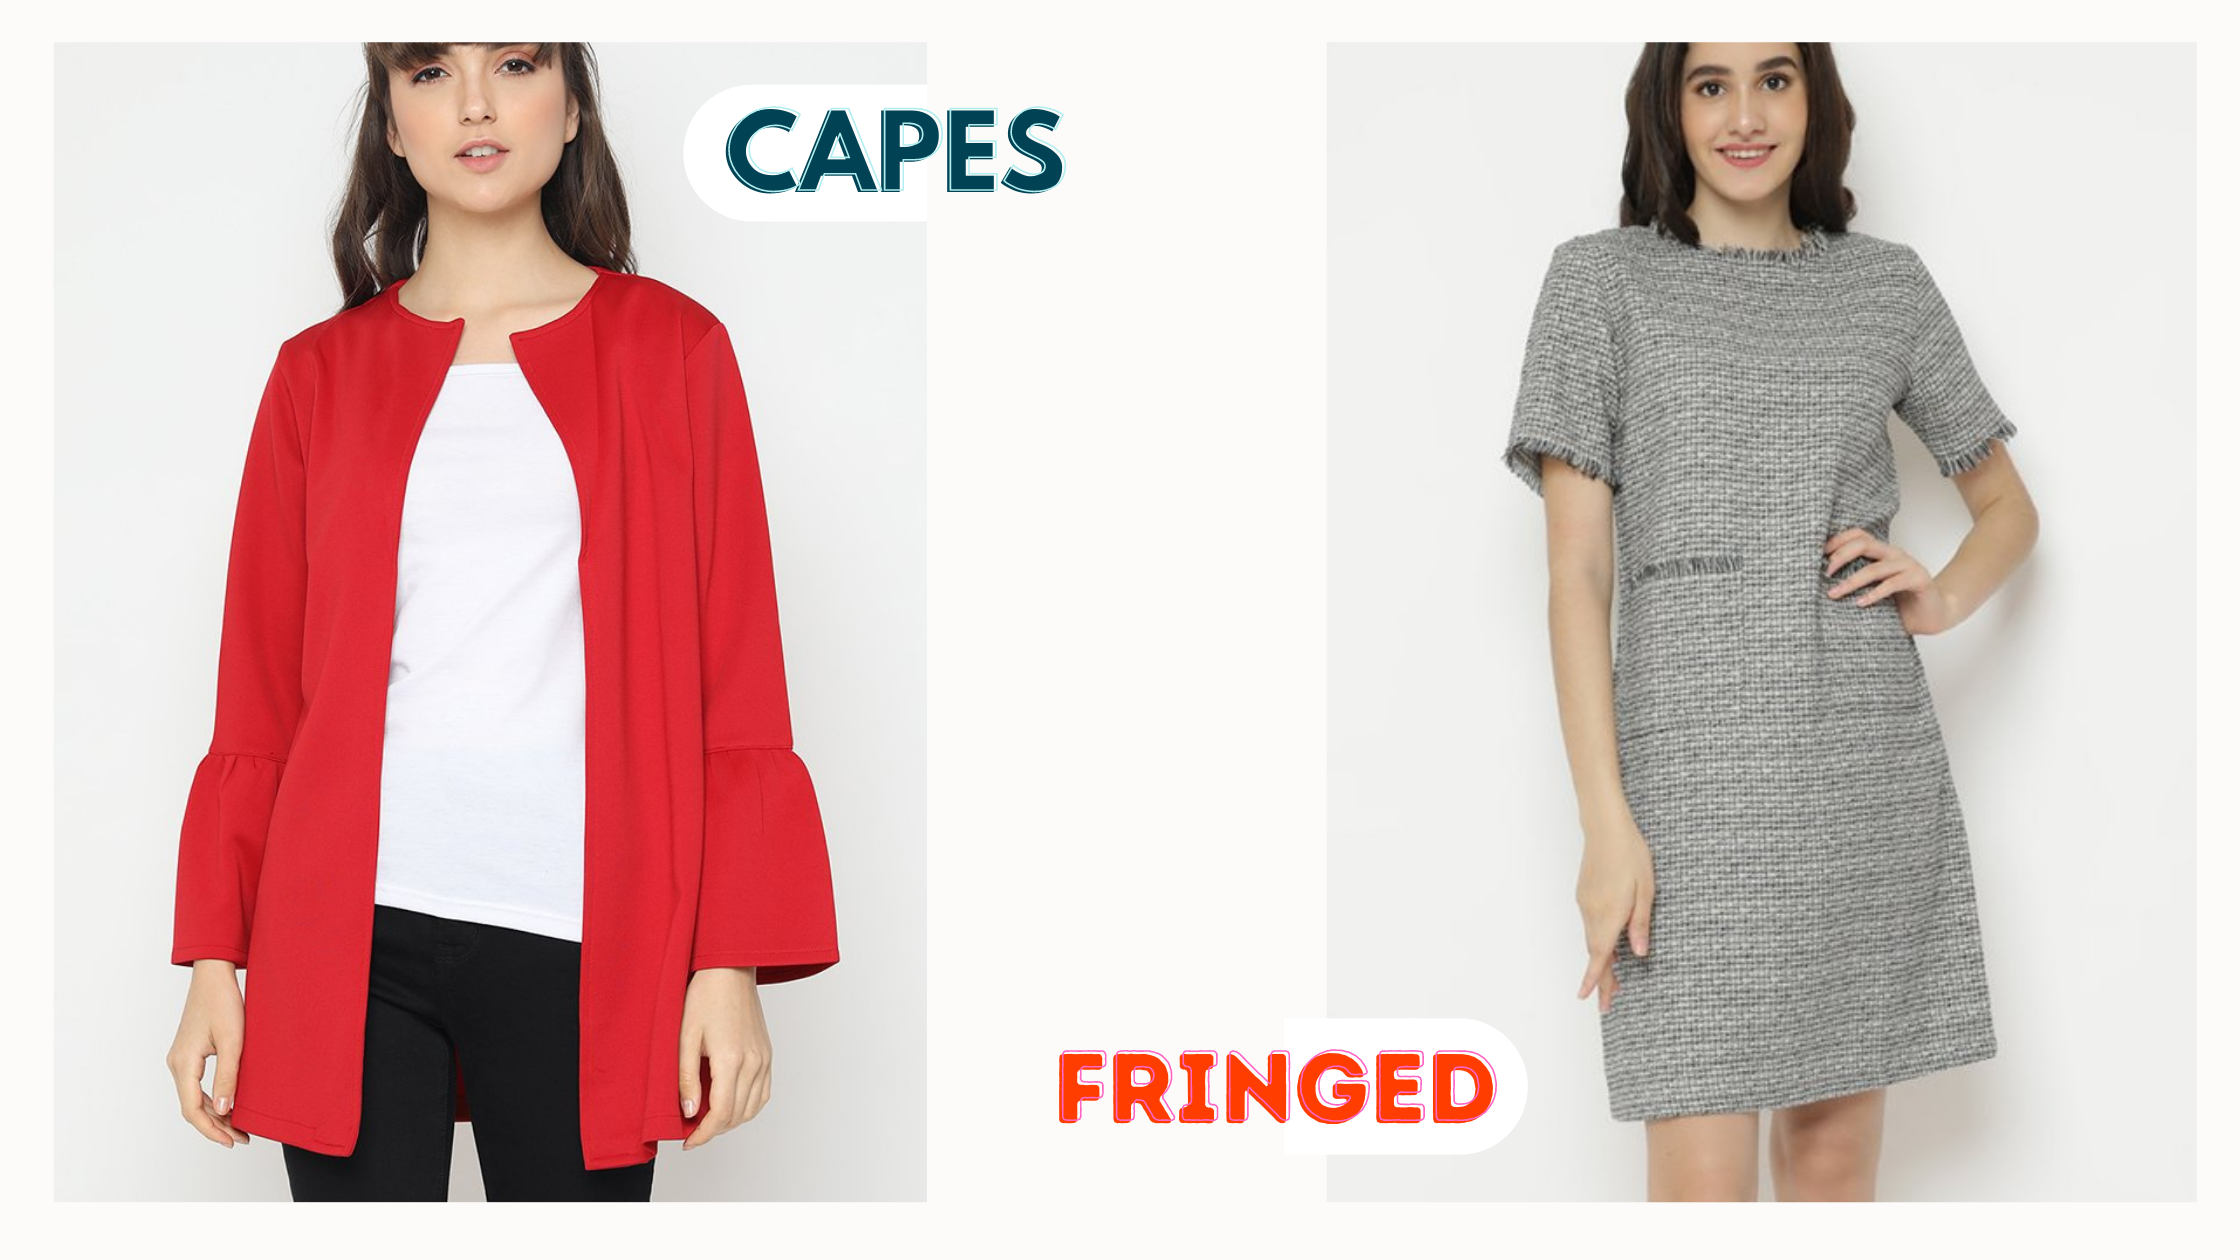 capes-fringed-trend-fashion-2020